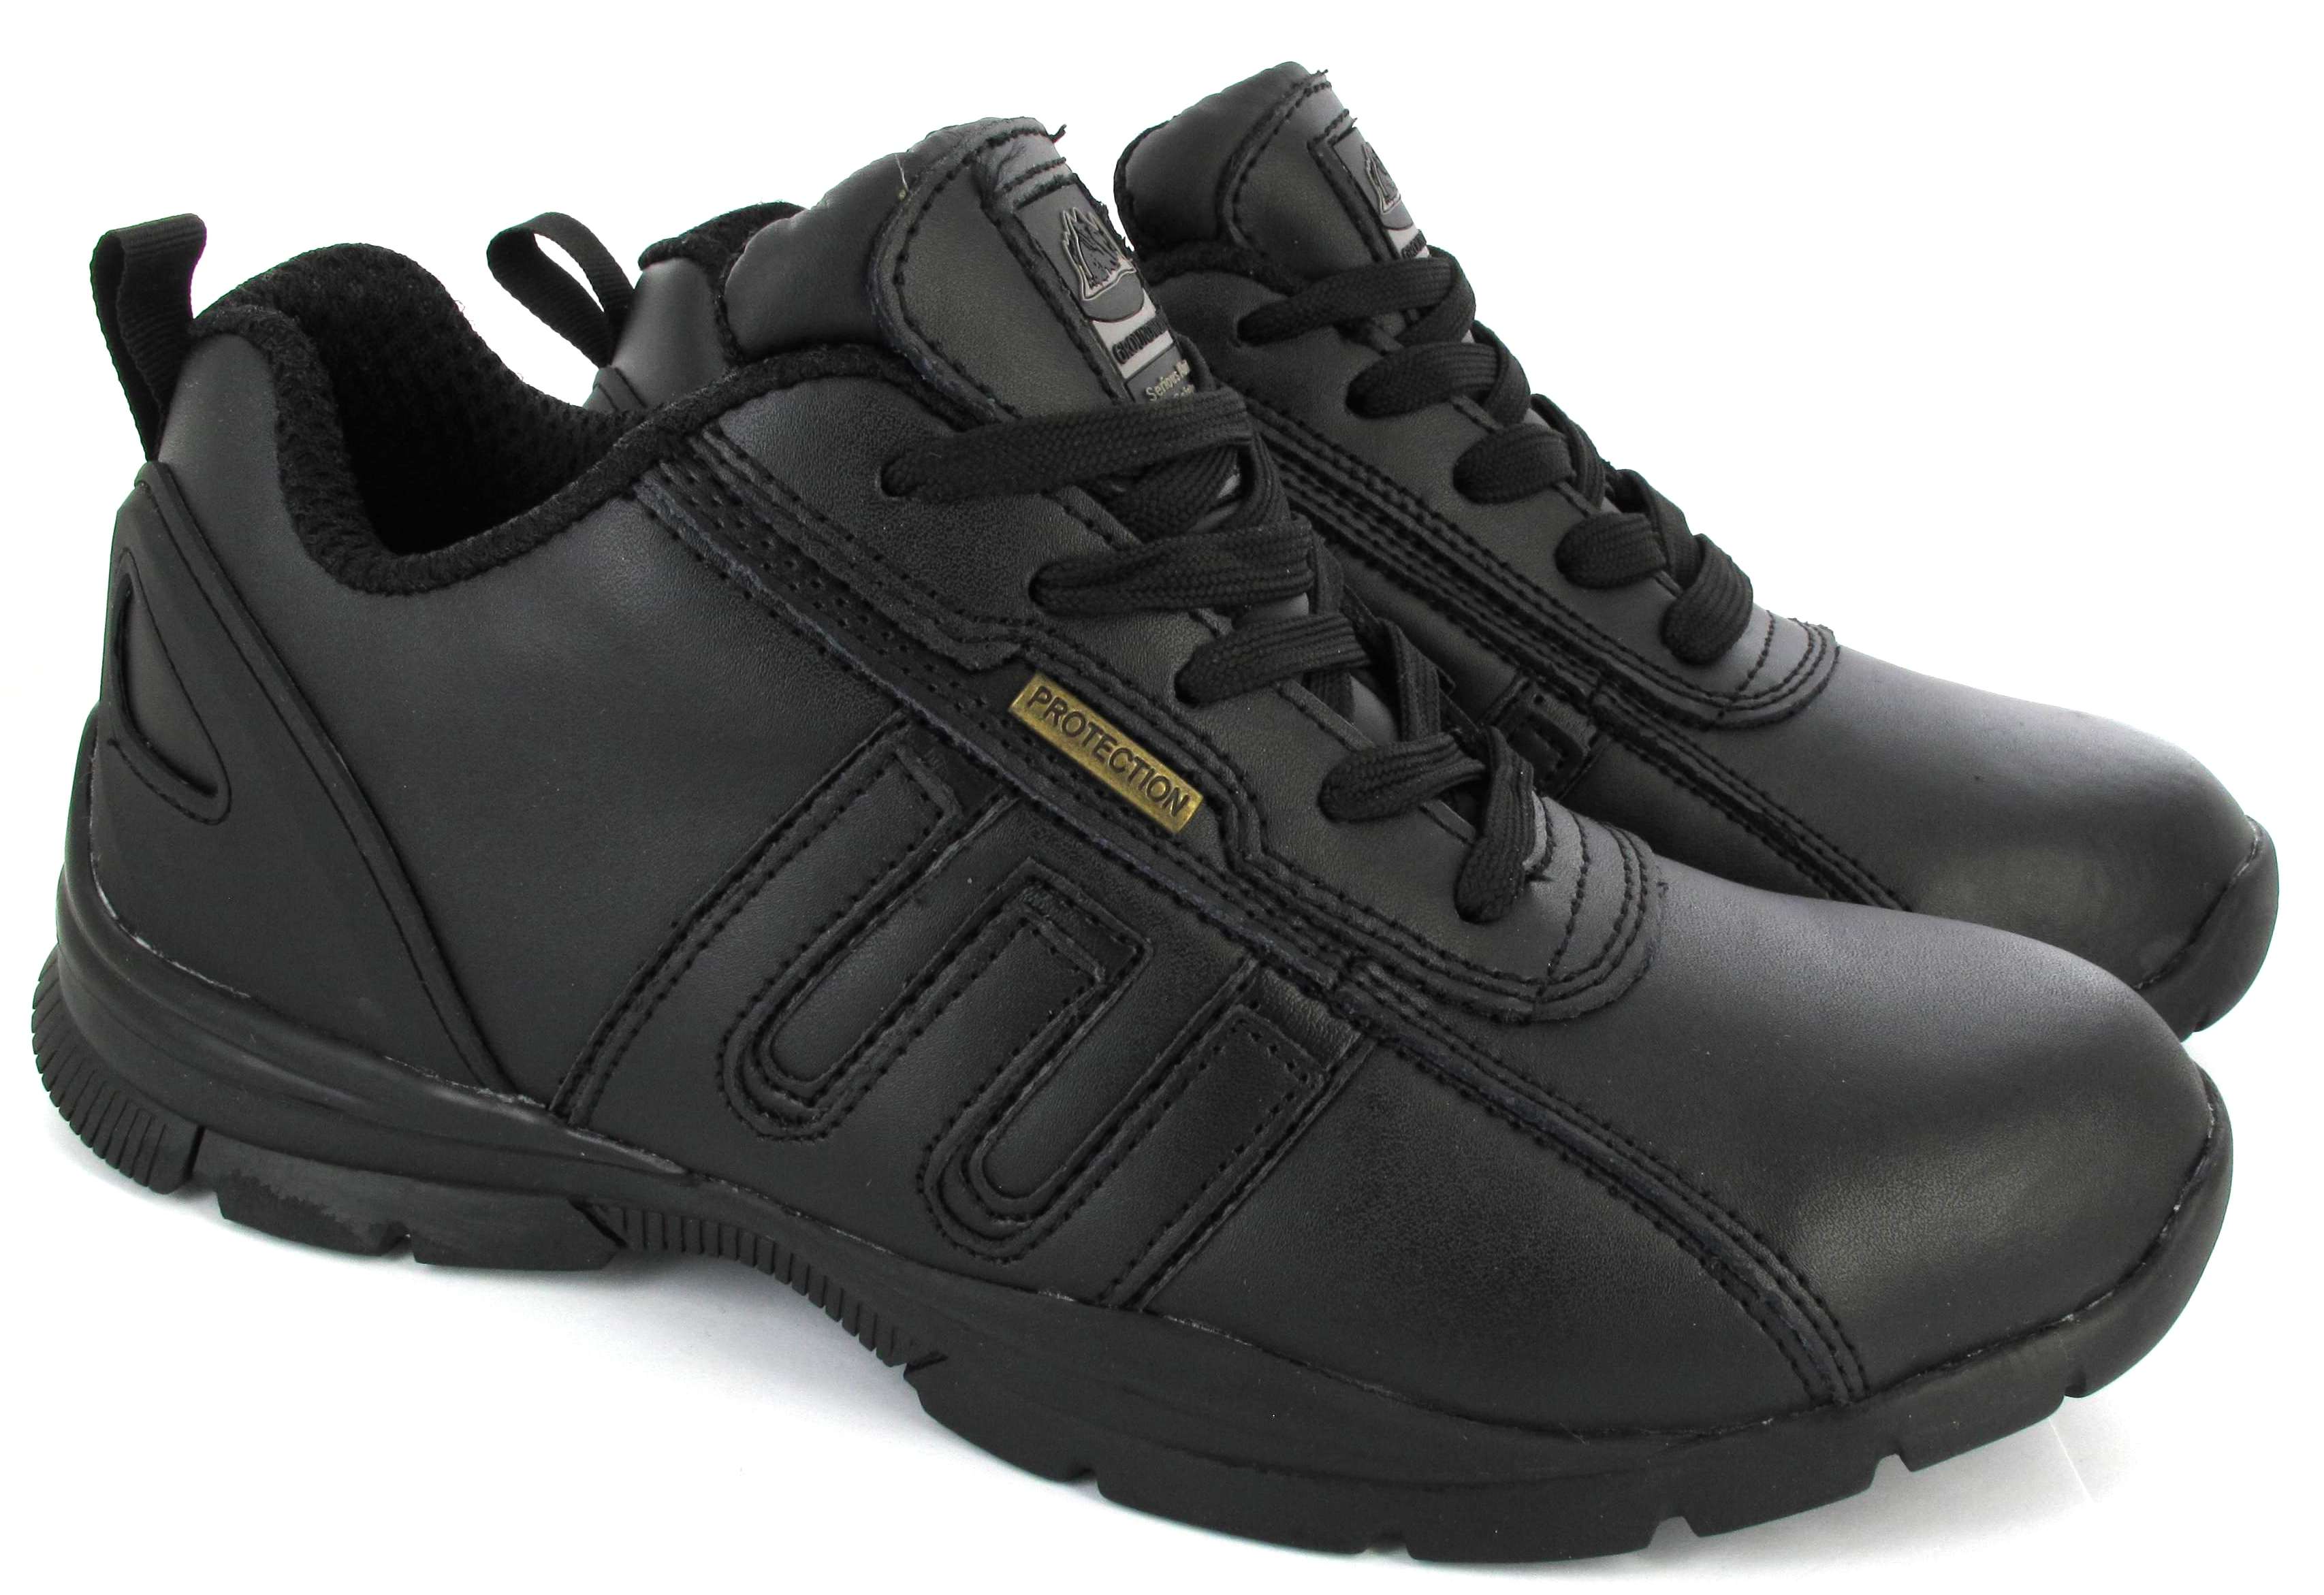 MENS-WORK-SAFETY-TRAINERS-STEEL-TOE-CAP-BOOT-HIKER-ANKLE-TRAINER-SHOES-SZ-3-13